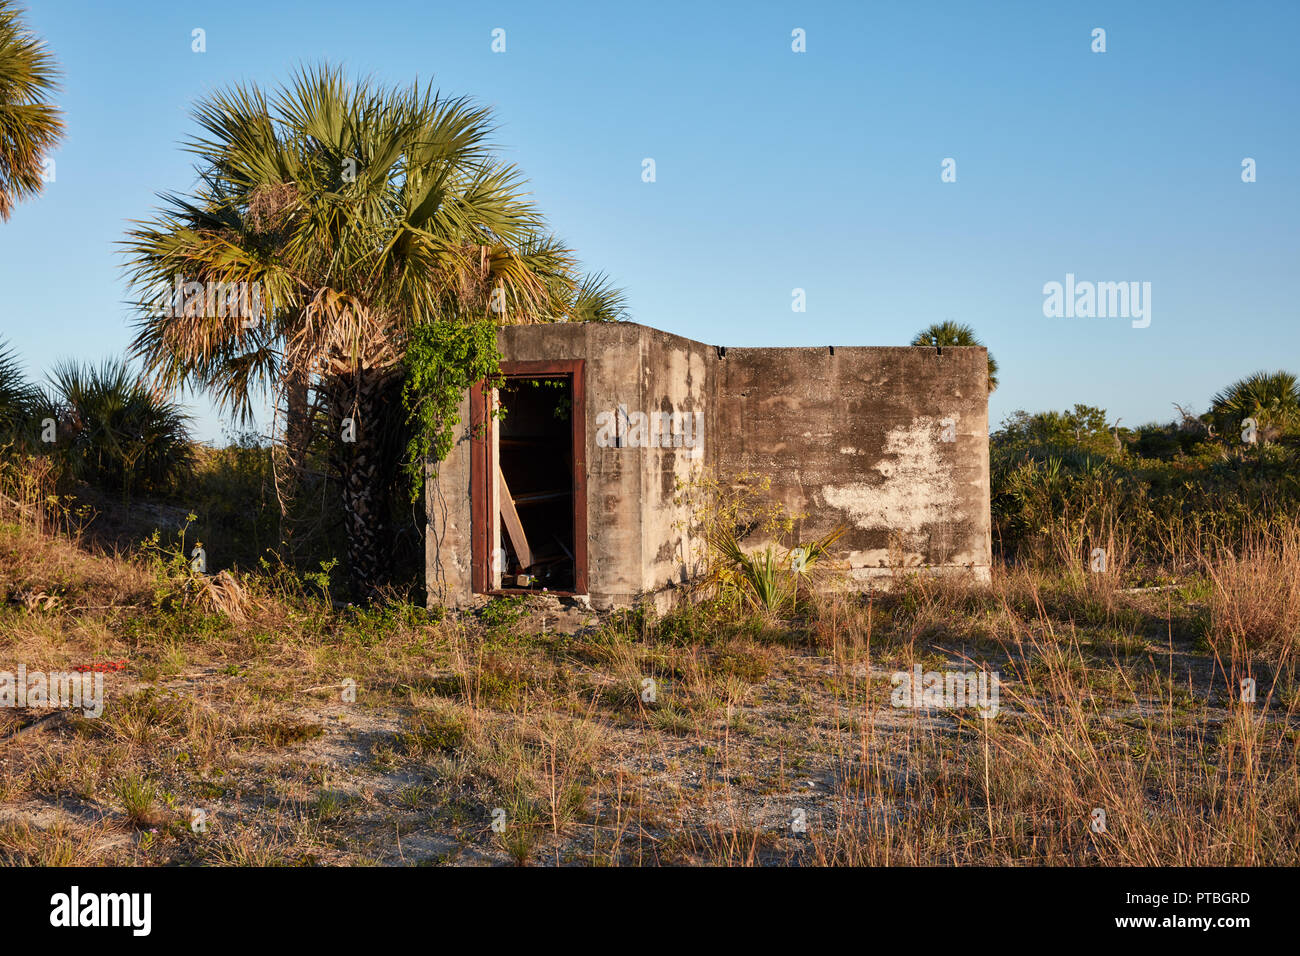 Abandoned concrete bunker on the grounds of the former United States military base Camp Murphy, now Jonathan Dickinson State Park, Florida - Stock Image